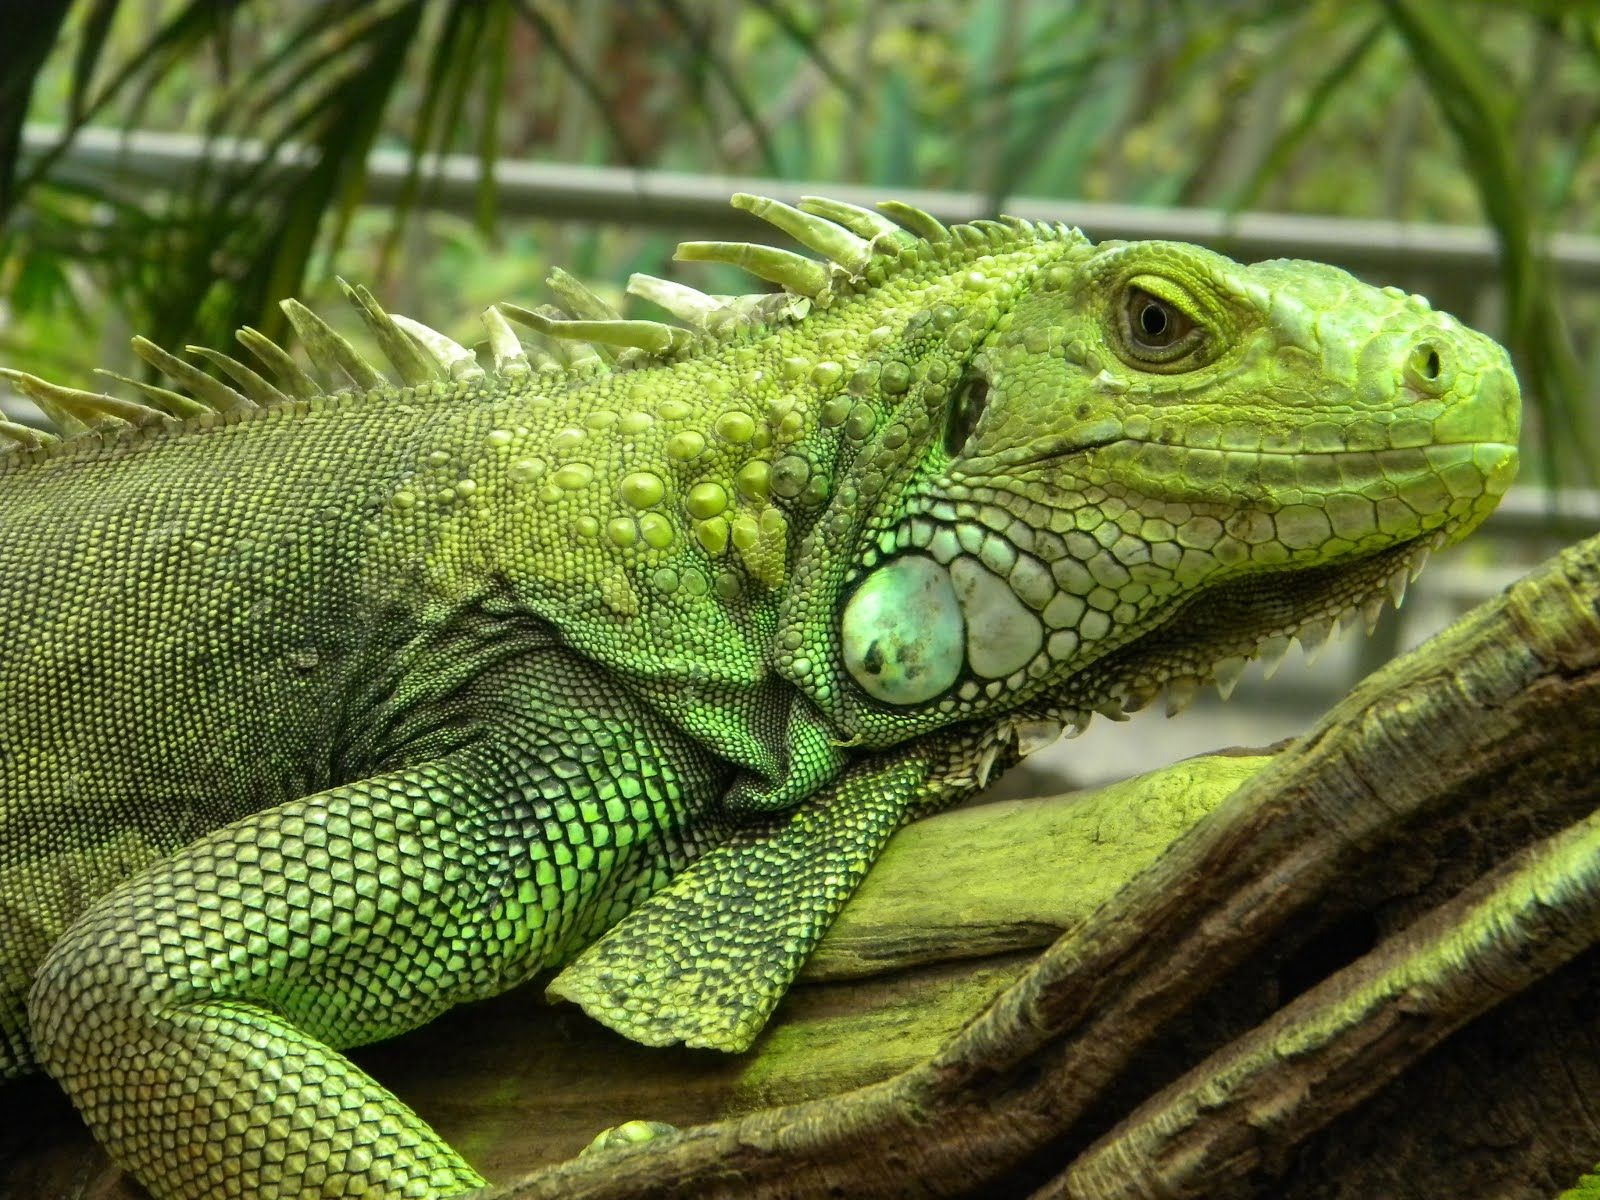 Best Pets Blog Your Iguana Cage What To Consider Iguana Cage Iguana Pet Blog